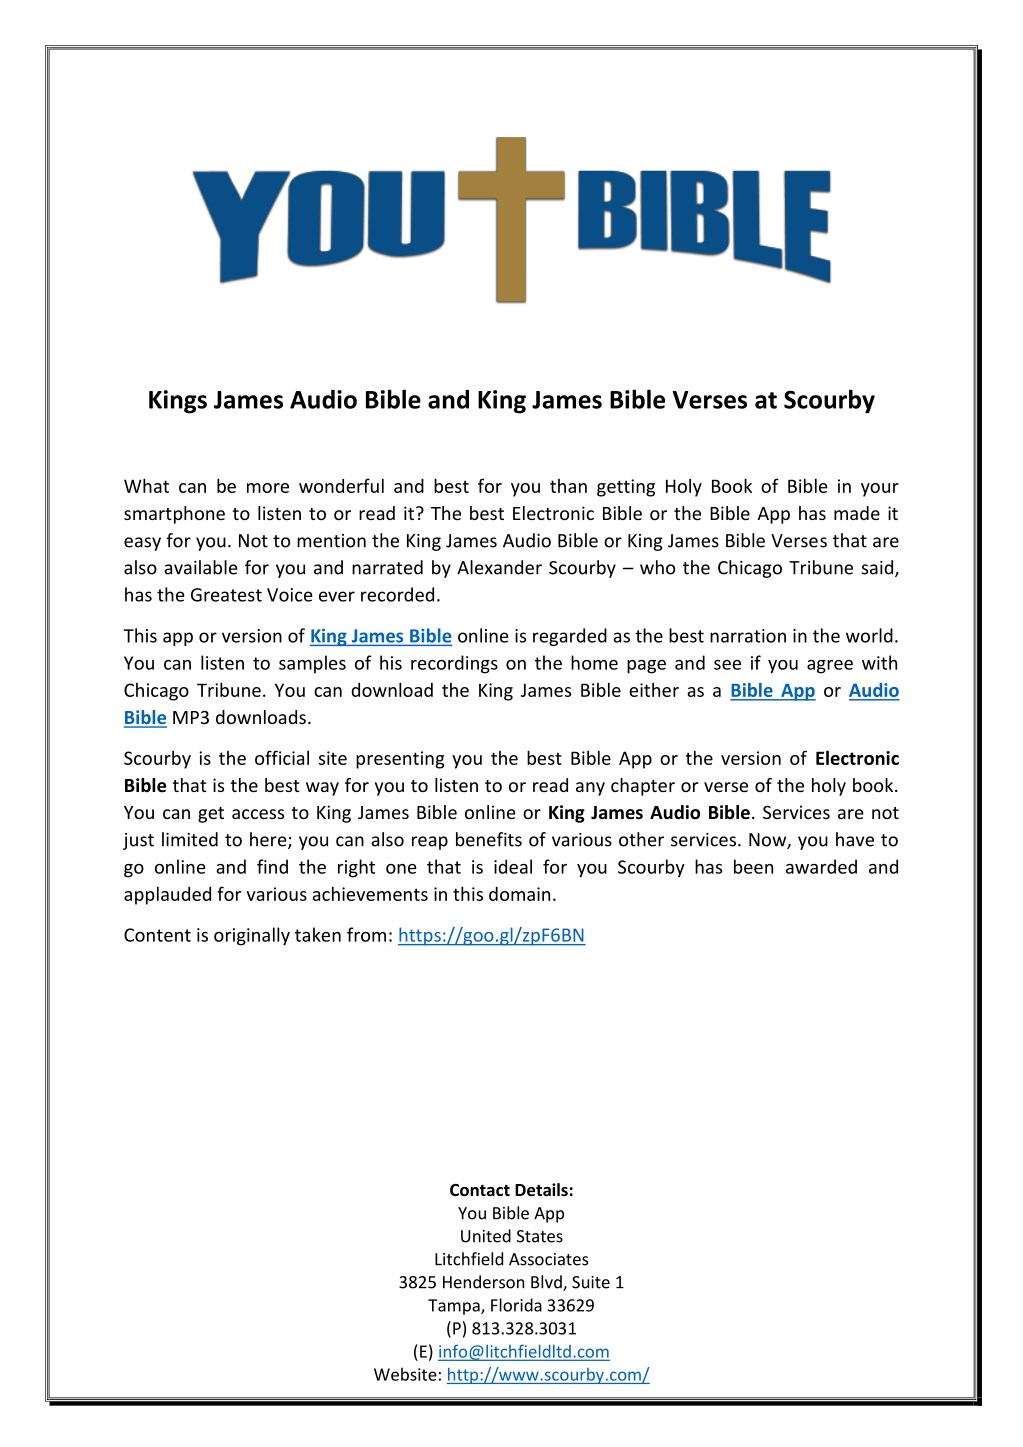 Download bible app or king james audio bible to listen to your.